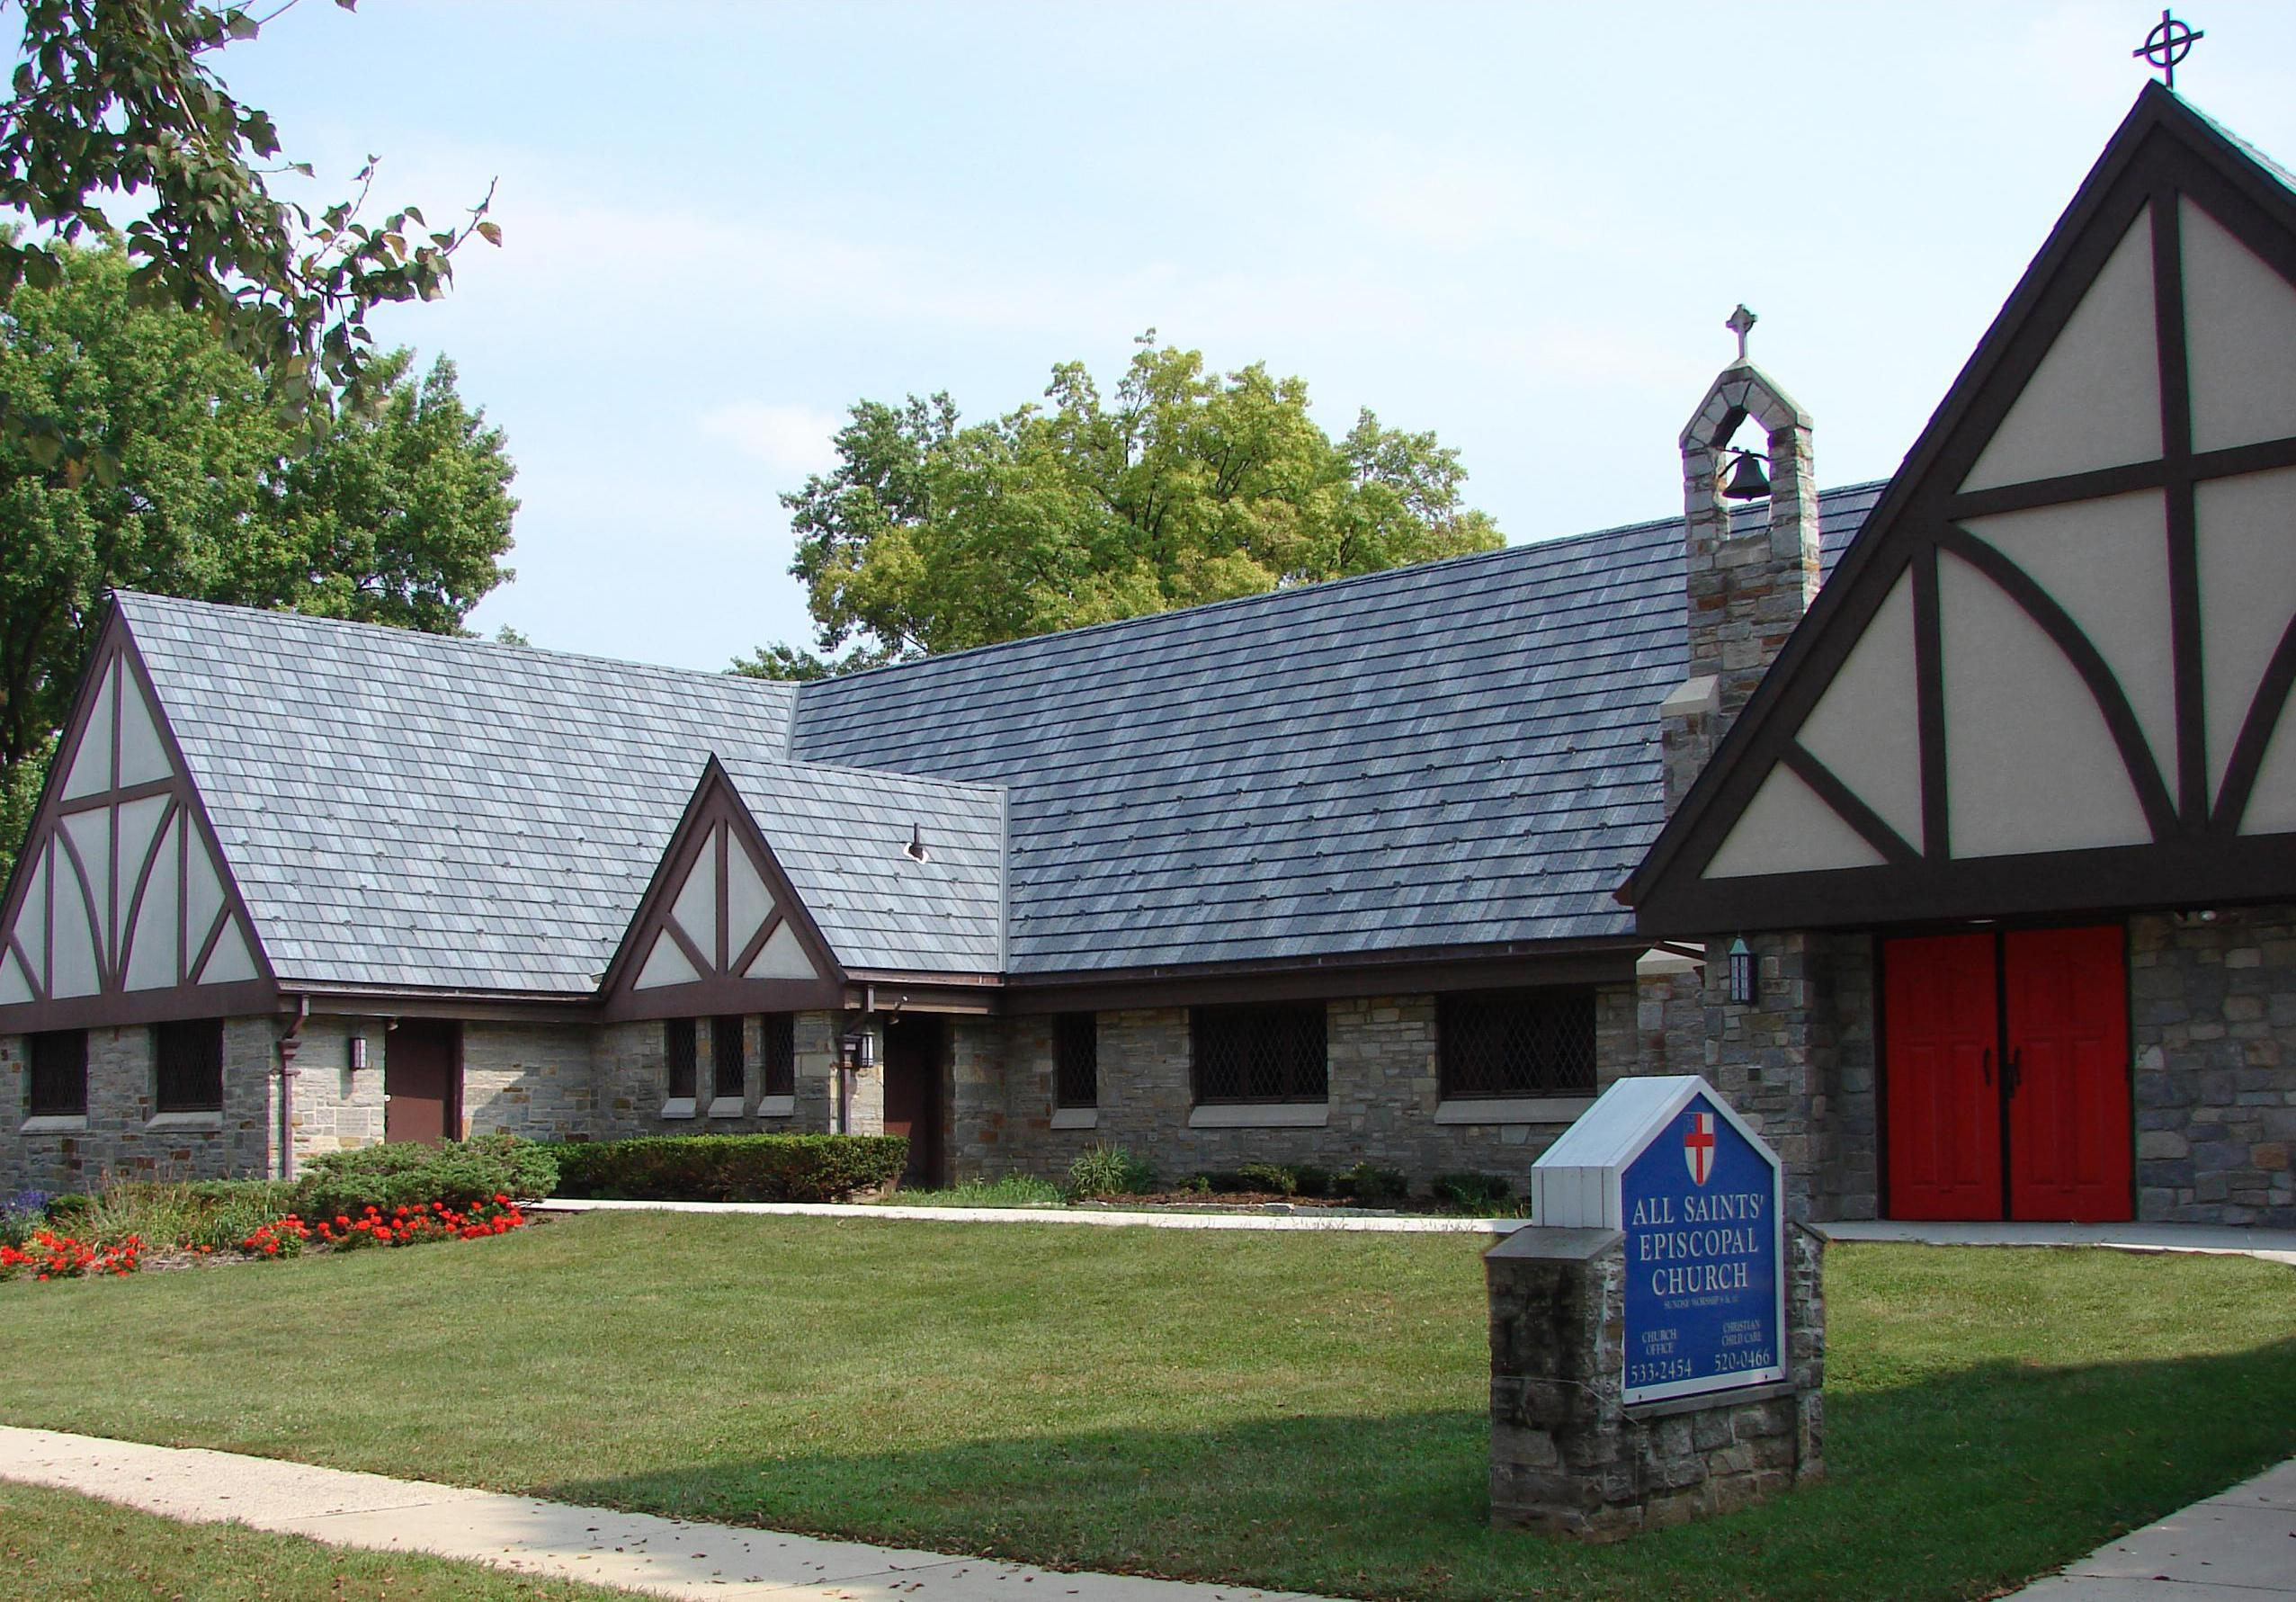 Arrowline Slate Stone Blend was installed on this church to compliment the stone architecture around the building.